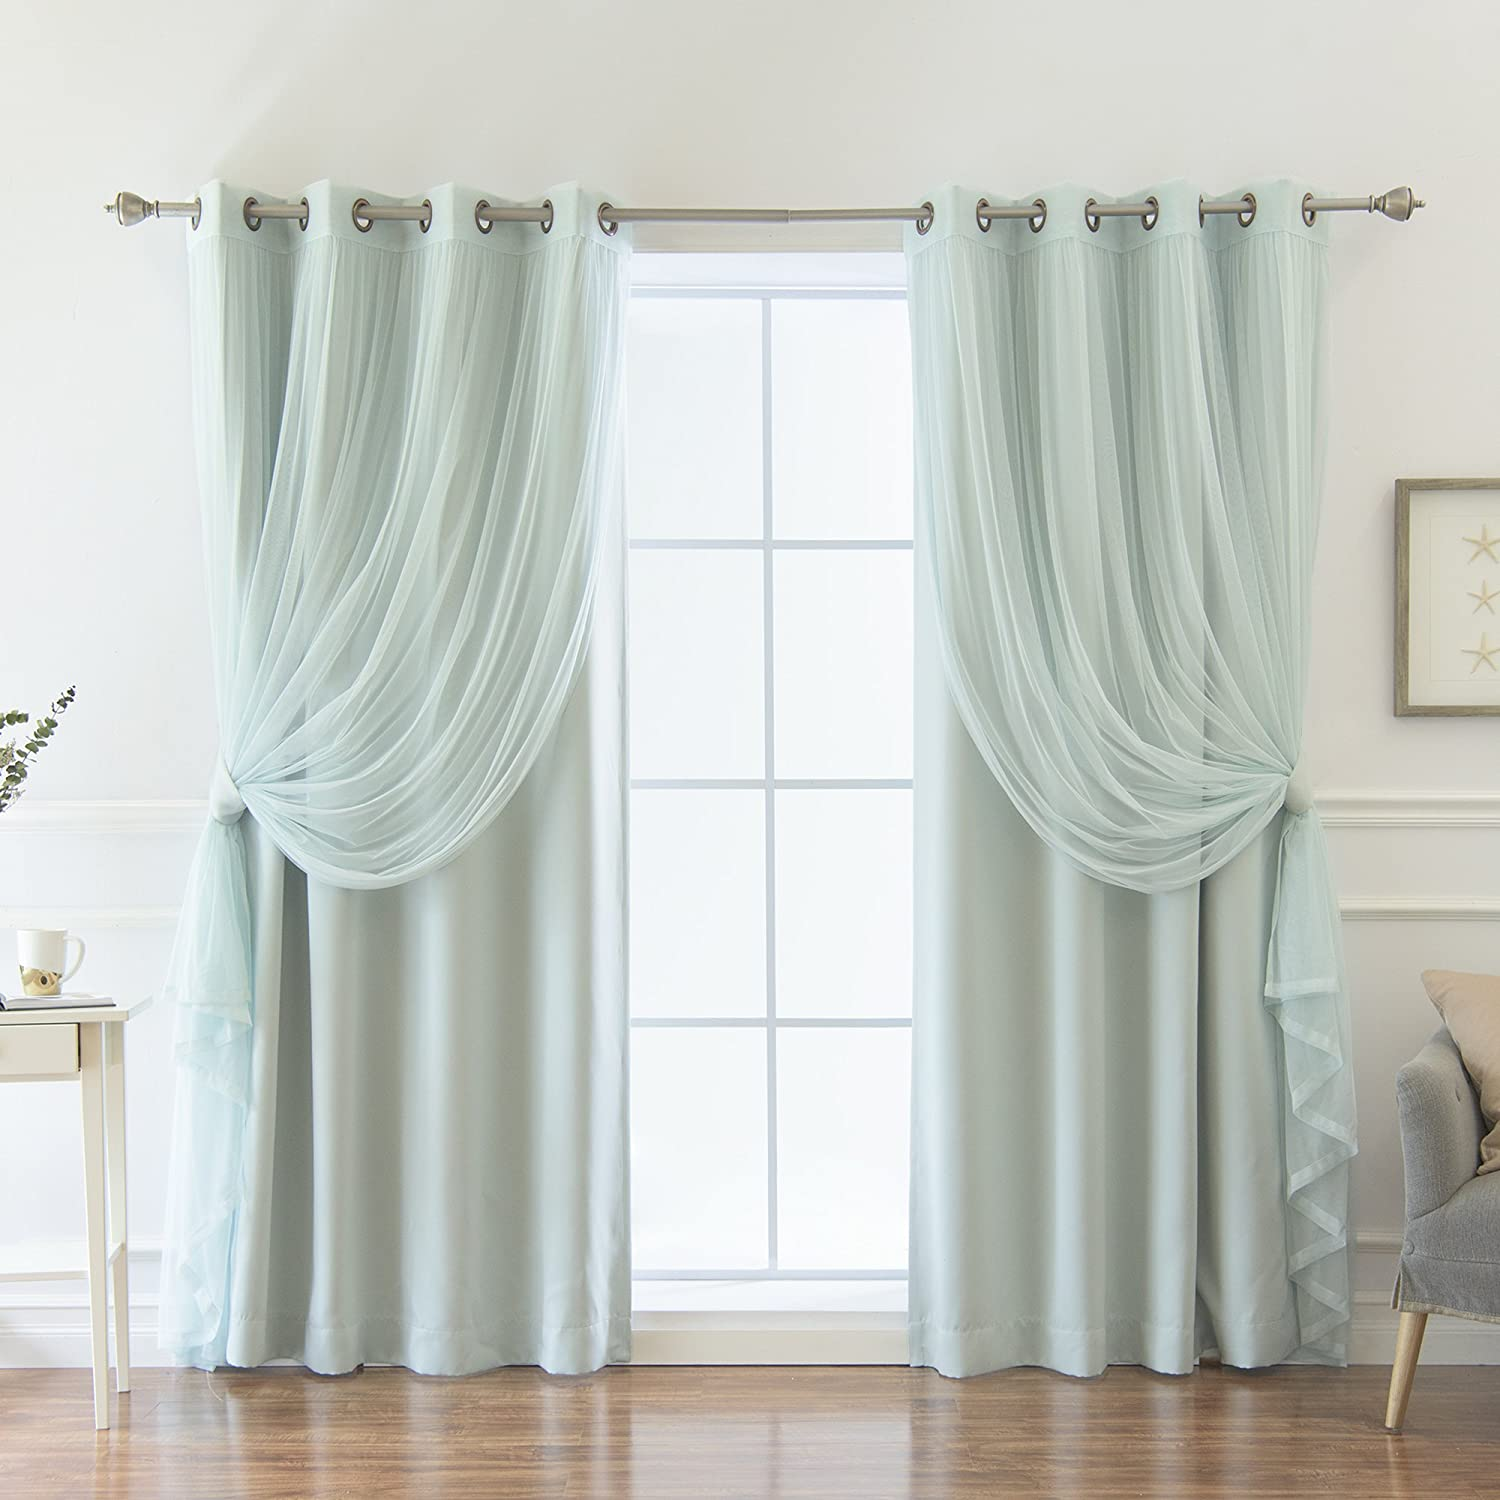 Best Home Fashion uMIXm Colored Tulle & Blackout Curtains - Mint - 52